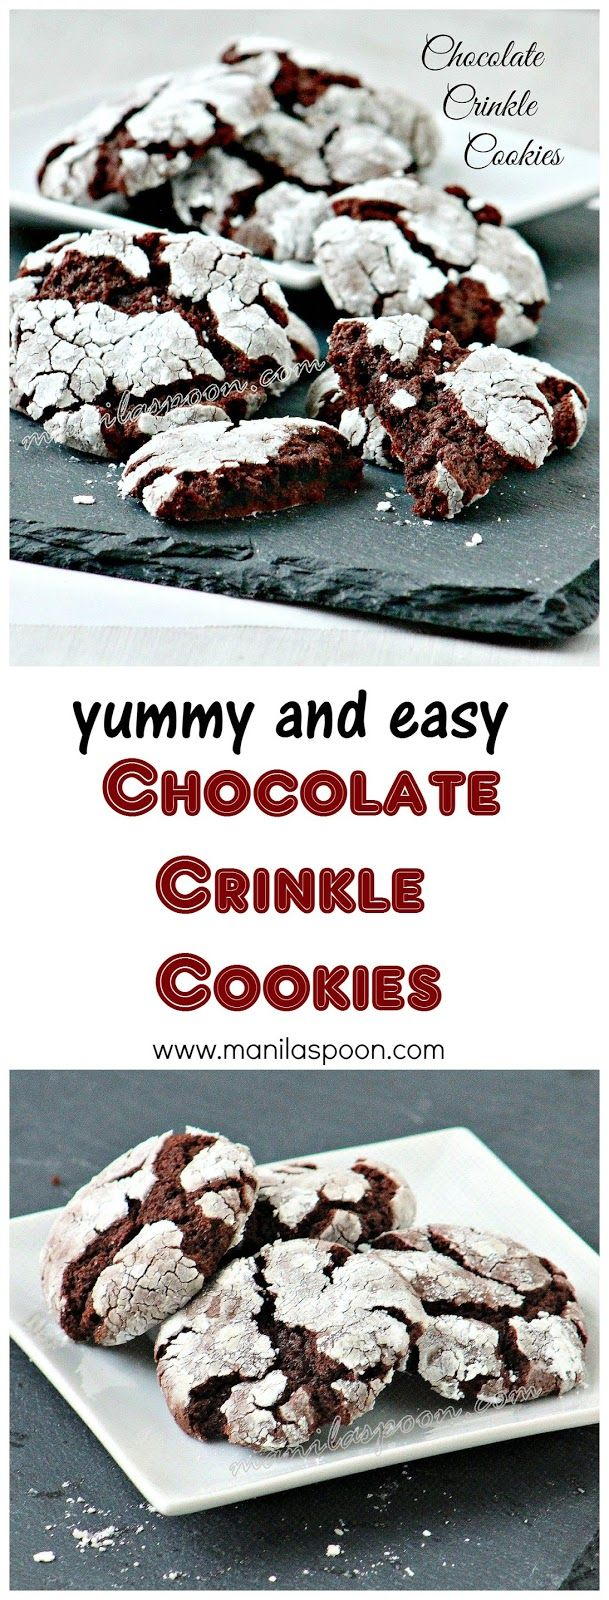 Fudgy, chewy, sweet and oh so yummy - Chocolate Crinkle Cookies So easy to make as well. Please enjoy. :)